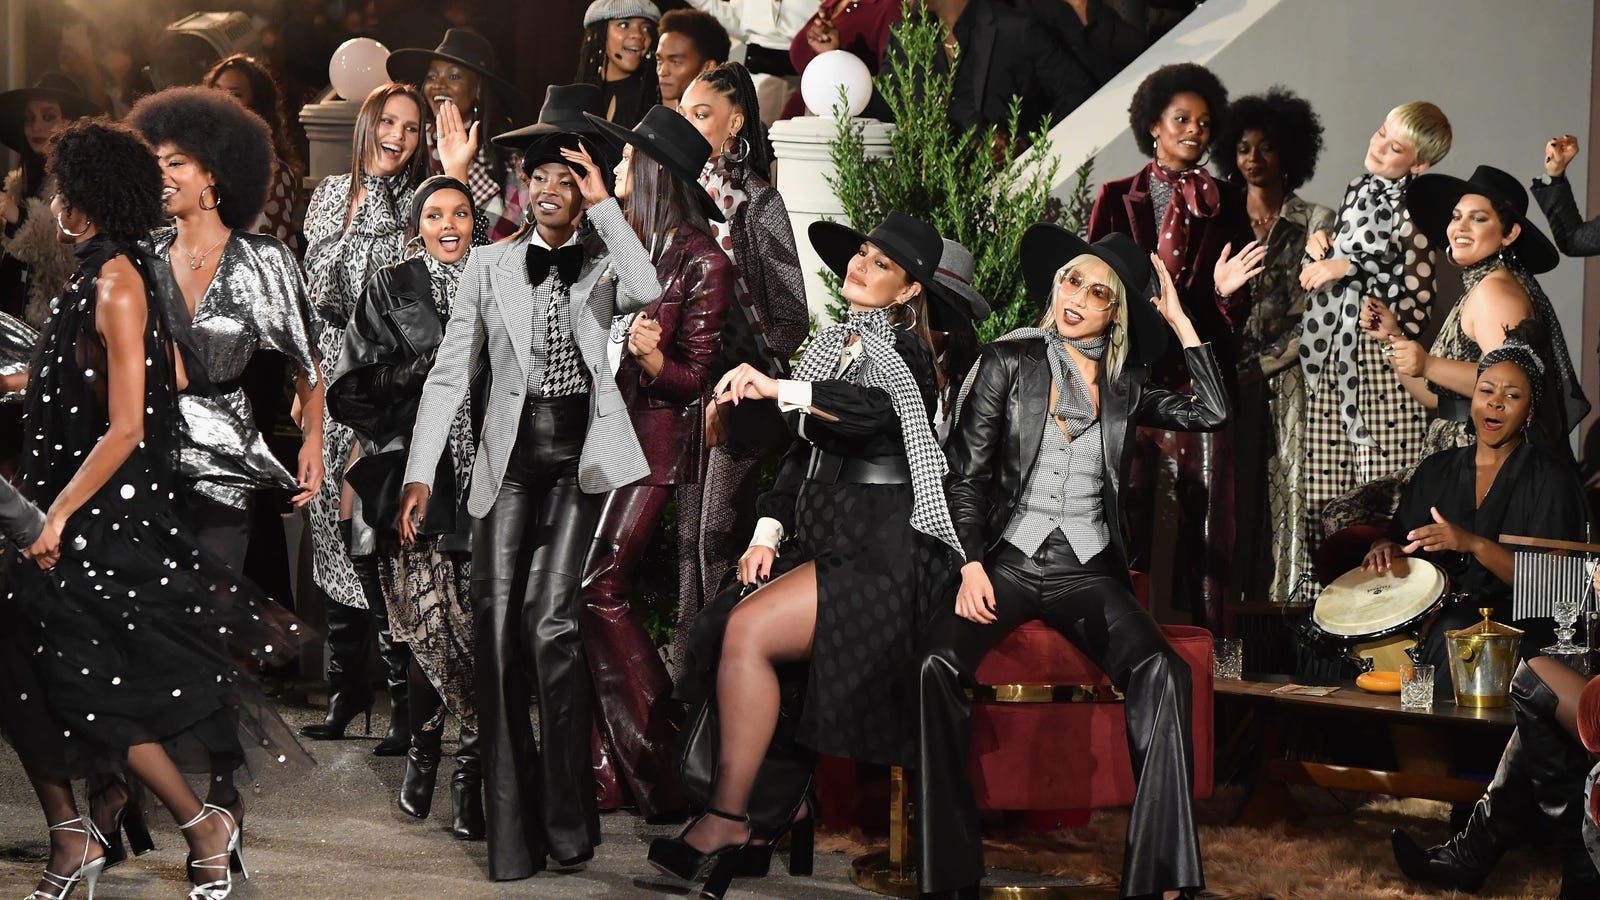 Showtime at the Apollo: Tommy Hilfiger x Zendaya Took Over Harlem for New York Fashion Week